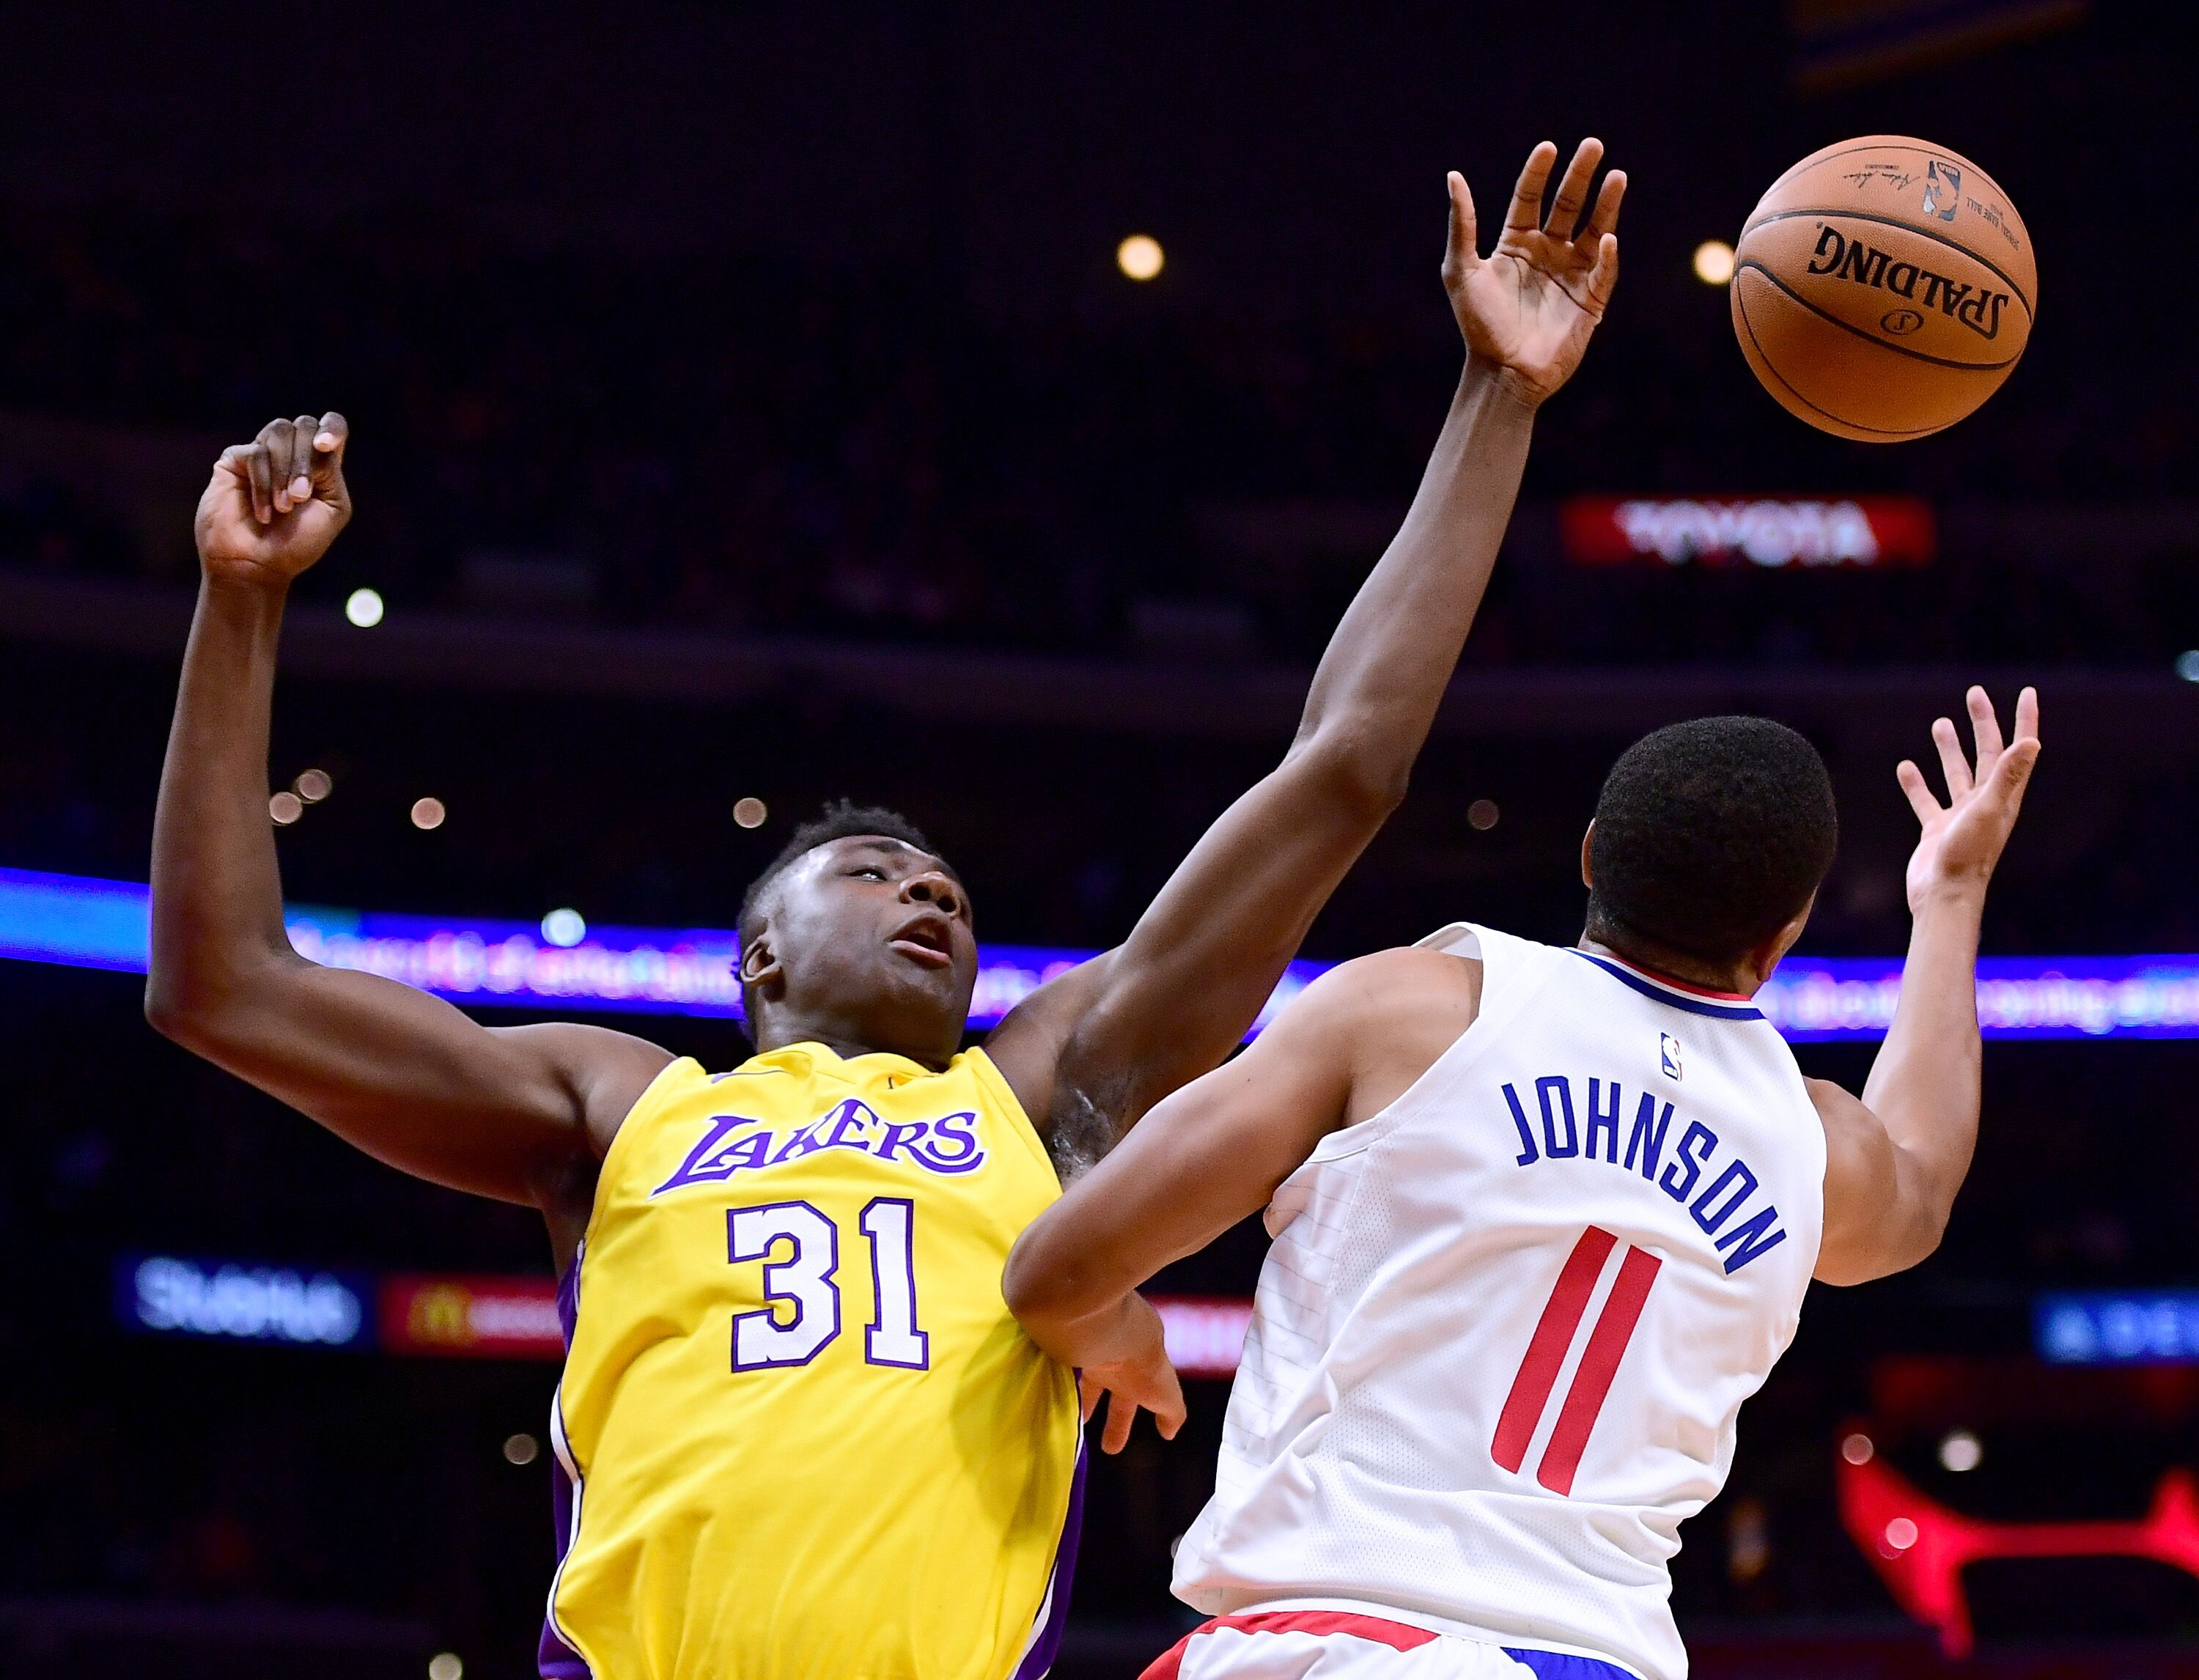 861103584-los-angeles-lakers-v-los-angeles-clippers.jpg